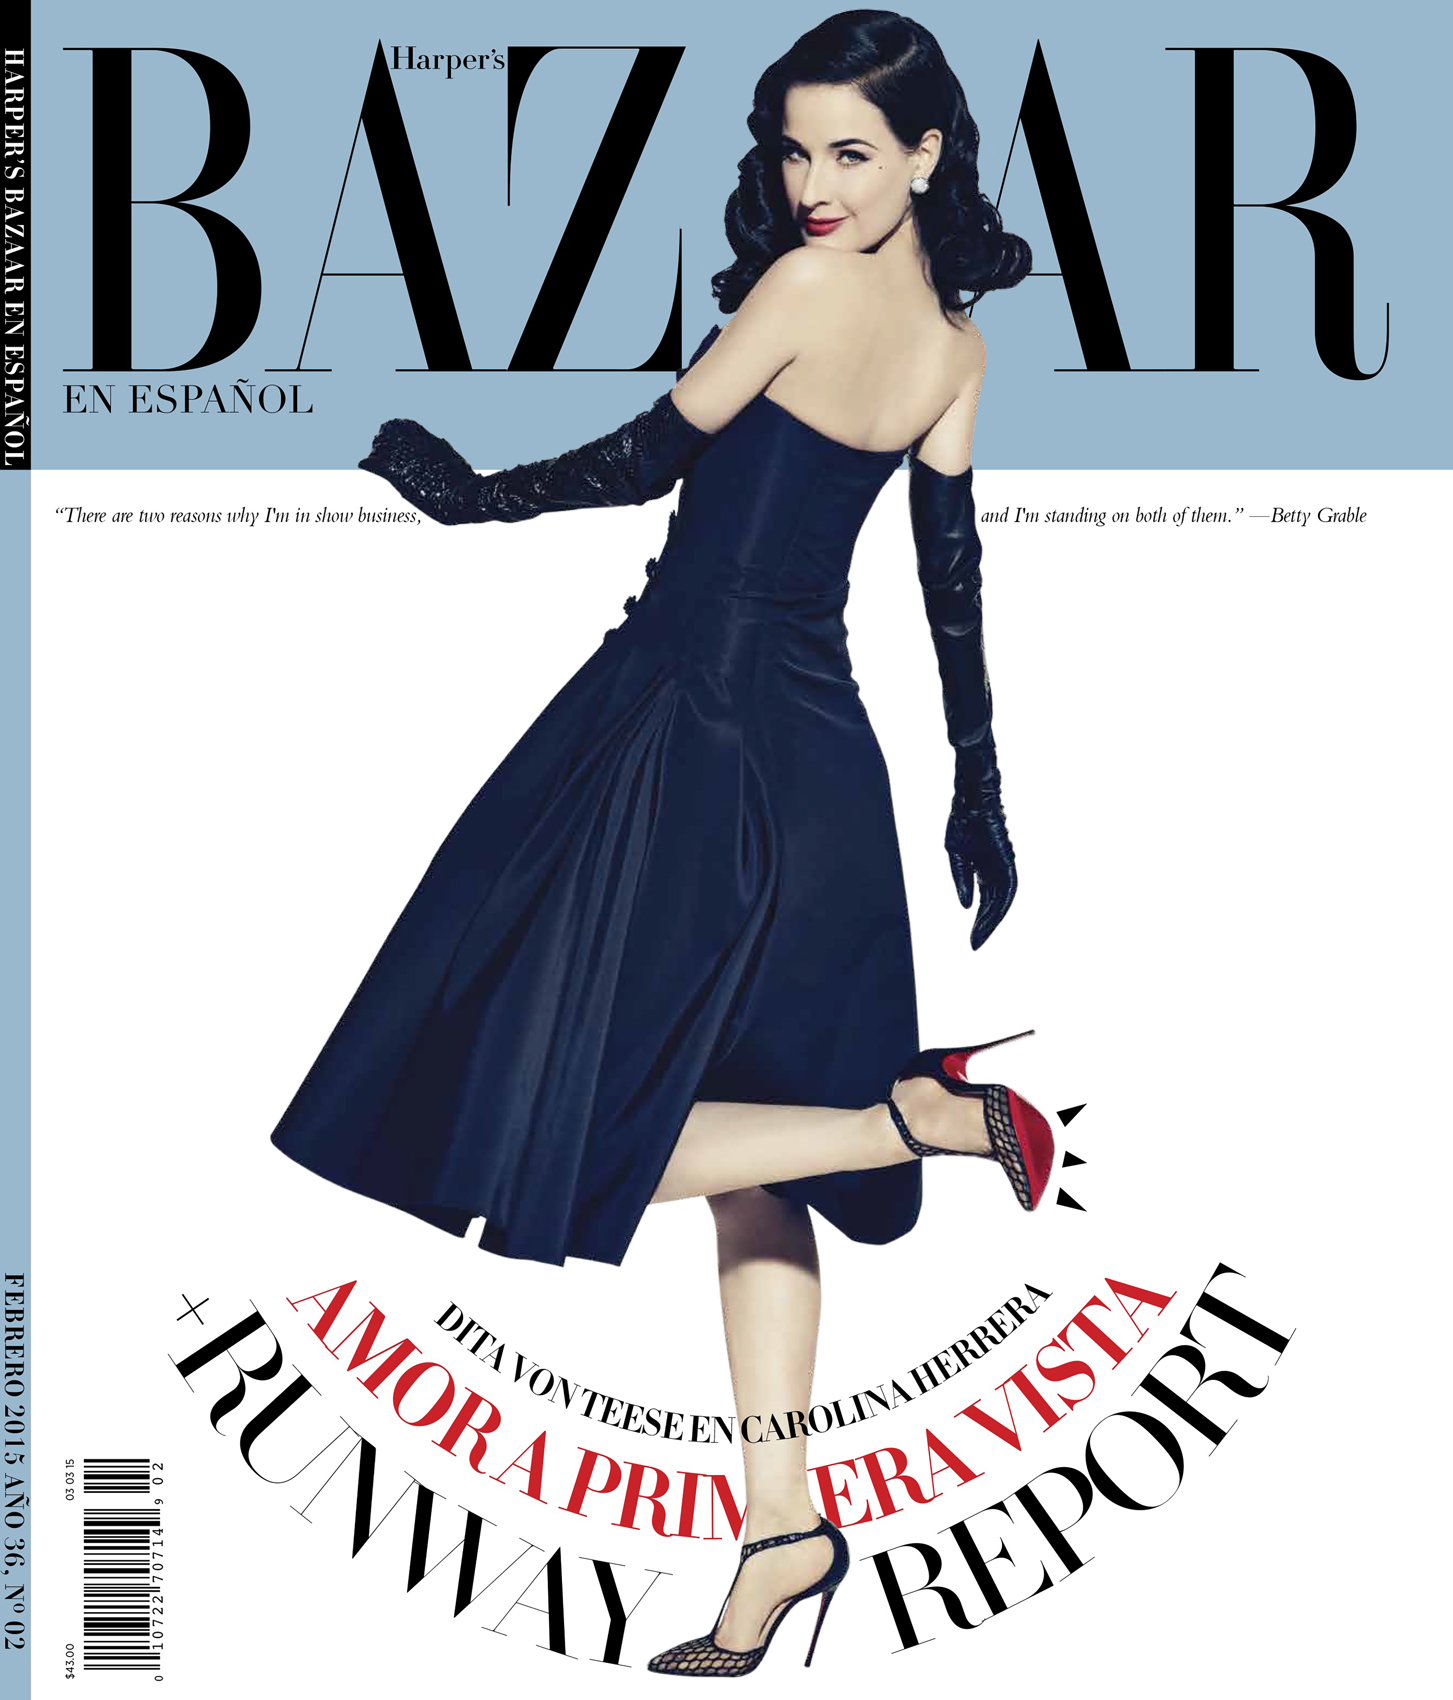 Dita_HBM_Cover_web